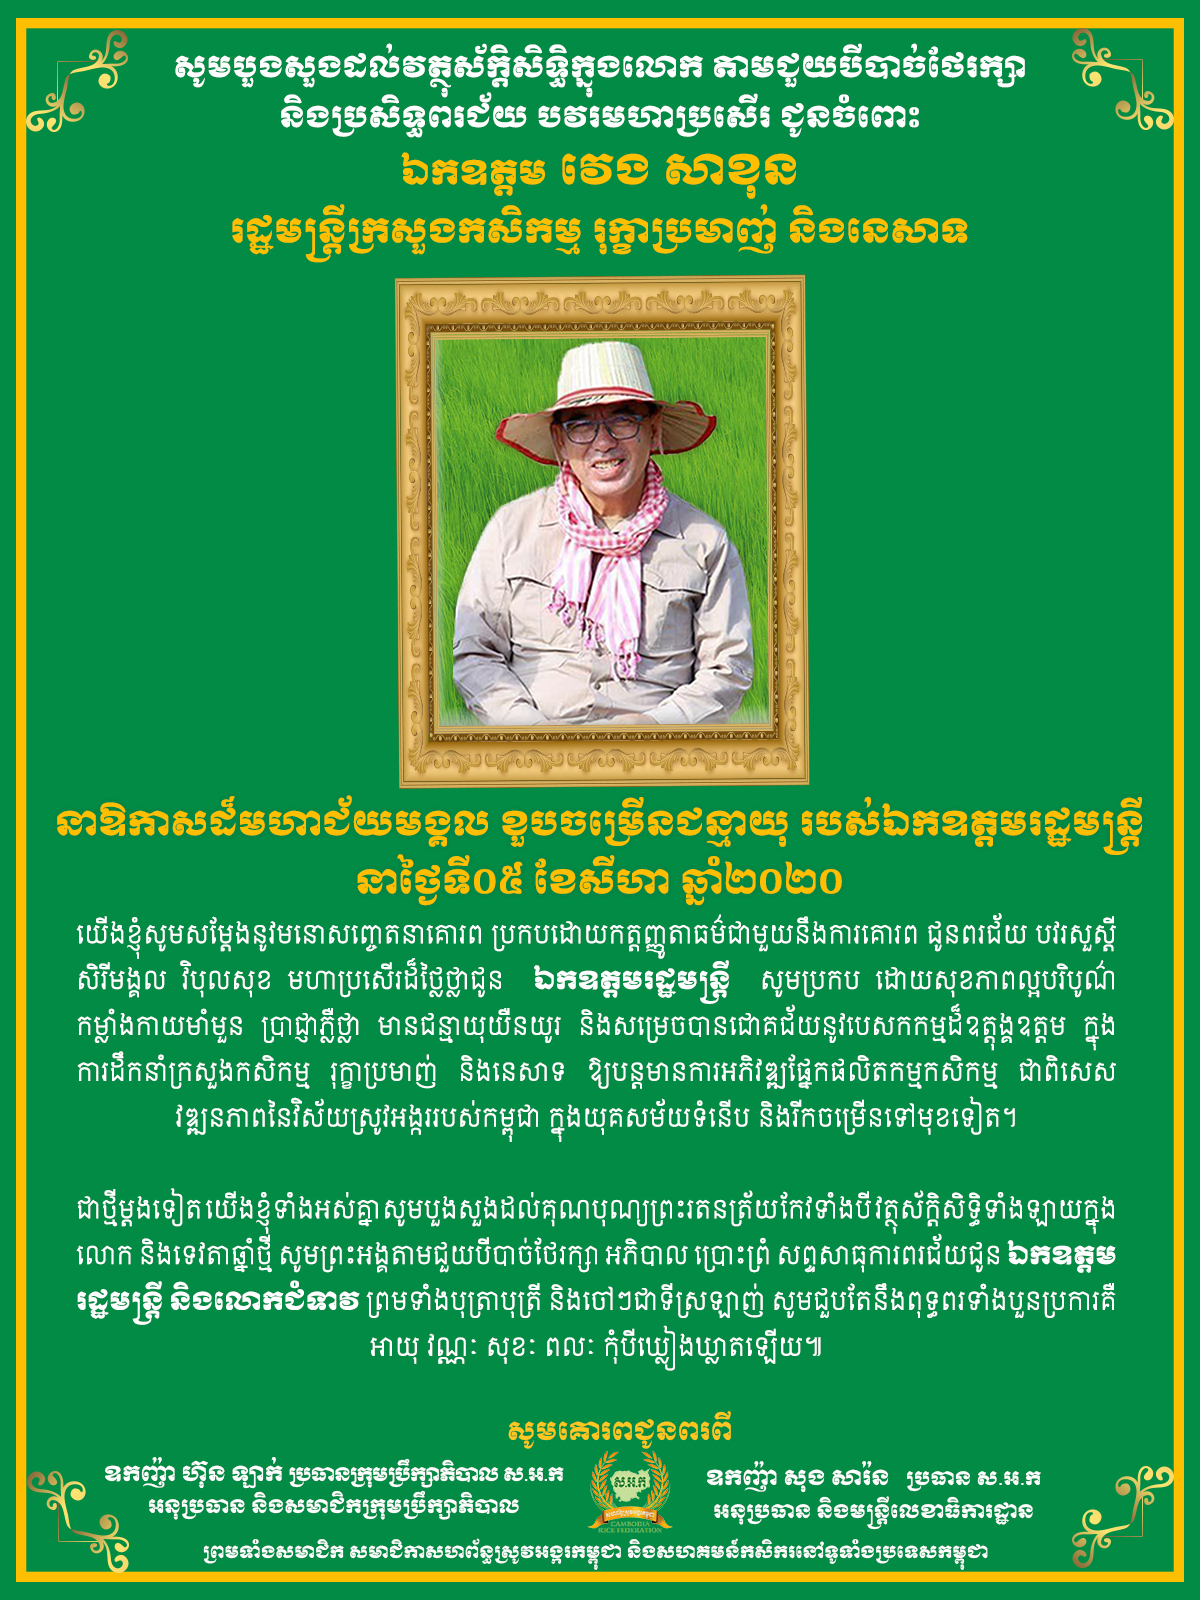 Wishing letter of Birthday H.E Veng Sakhon